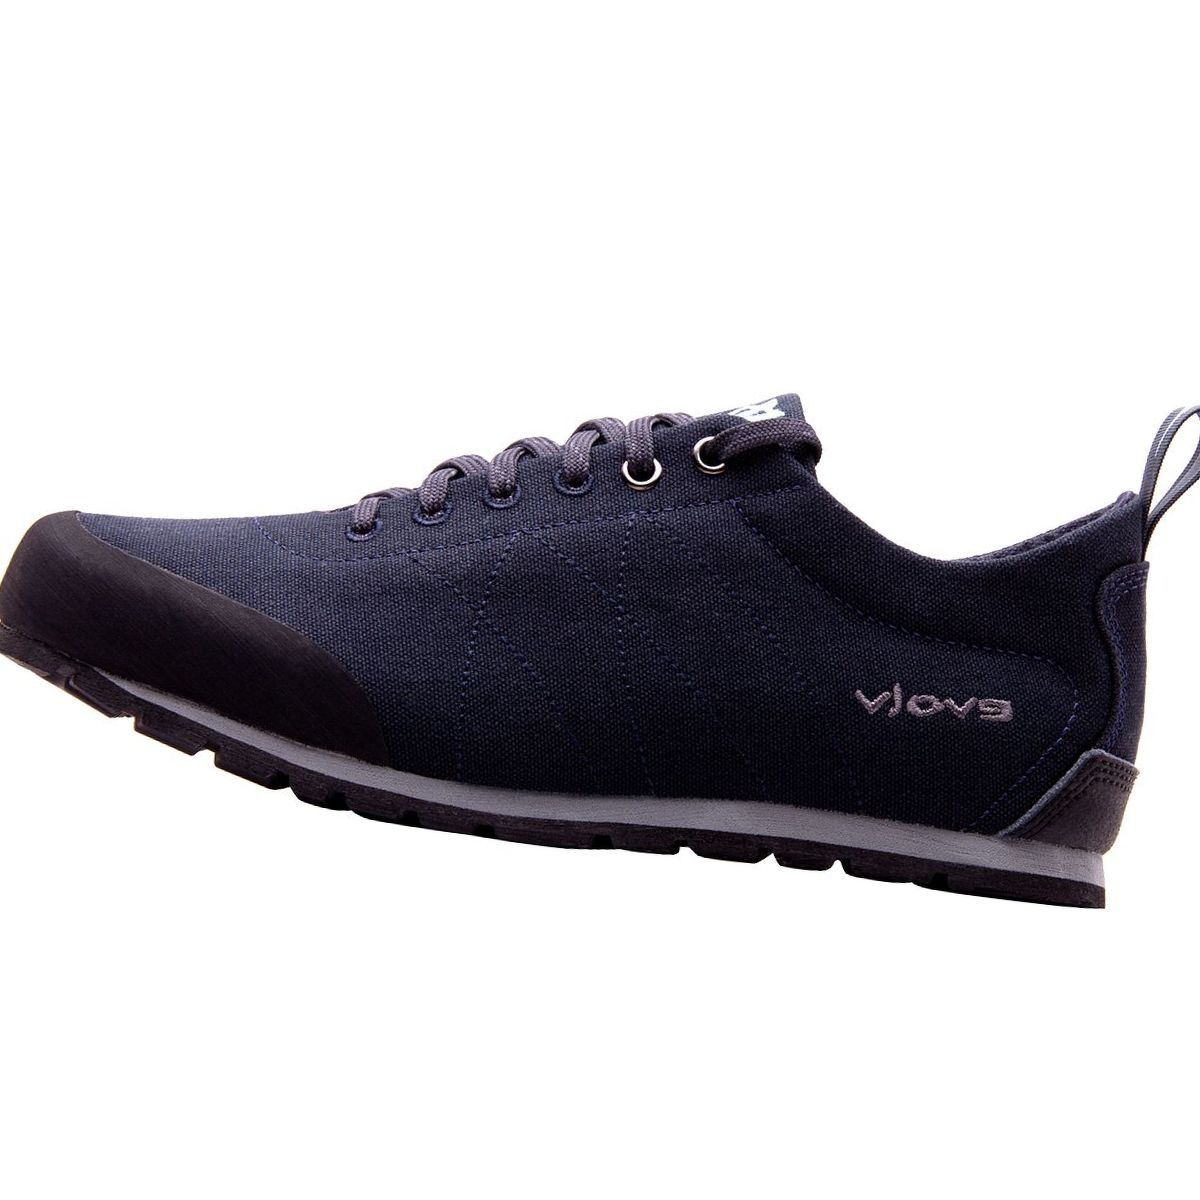 Evolv Cruzer Psyche Approach Shoe - Women's